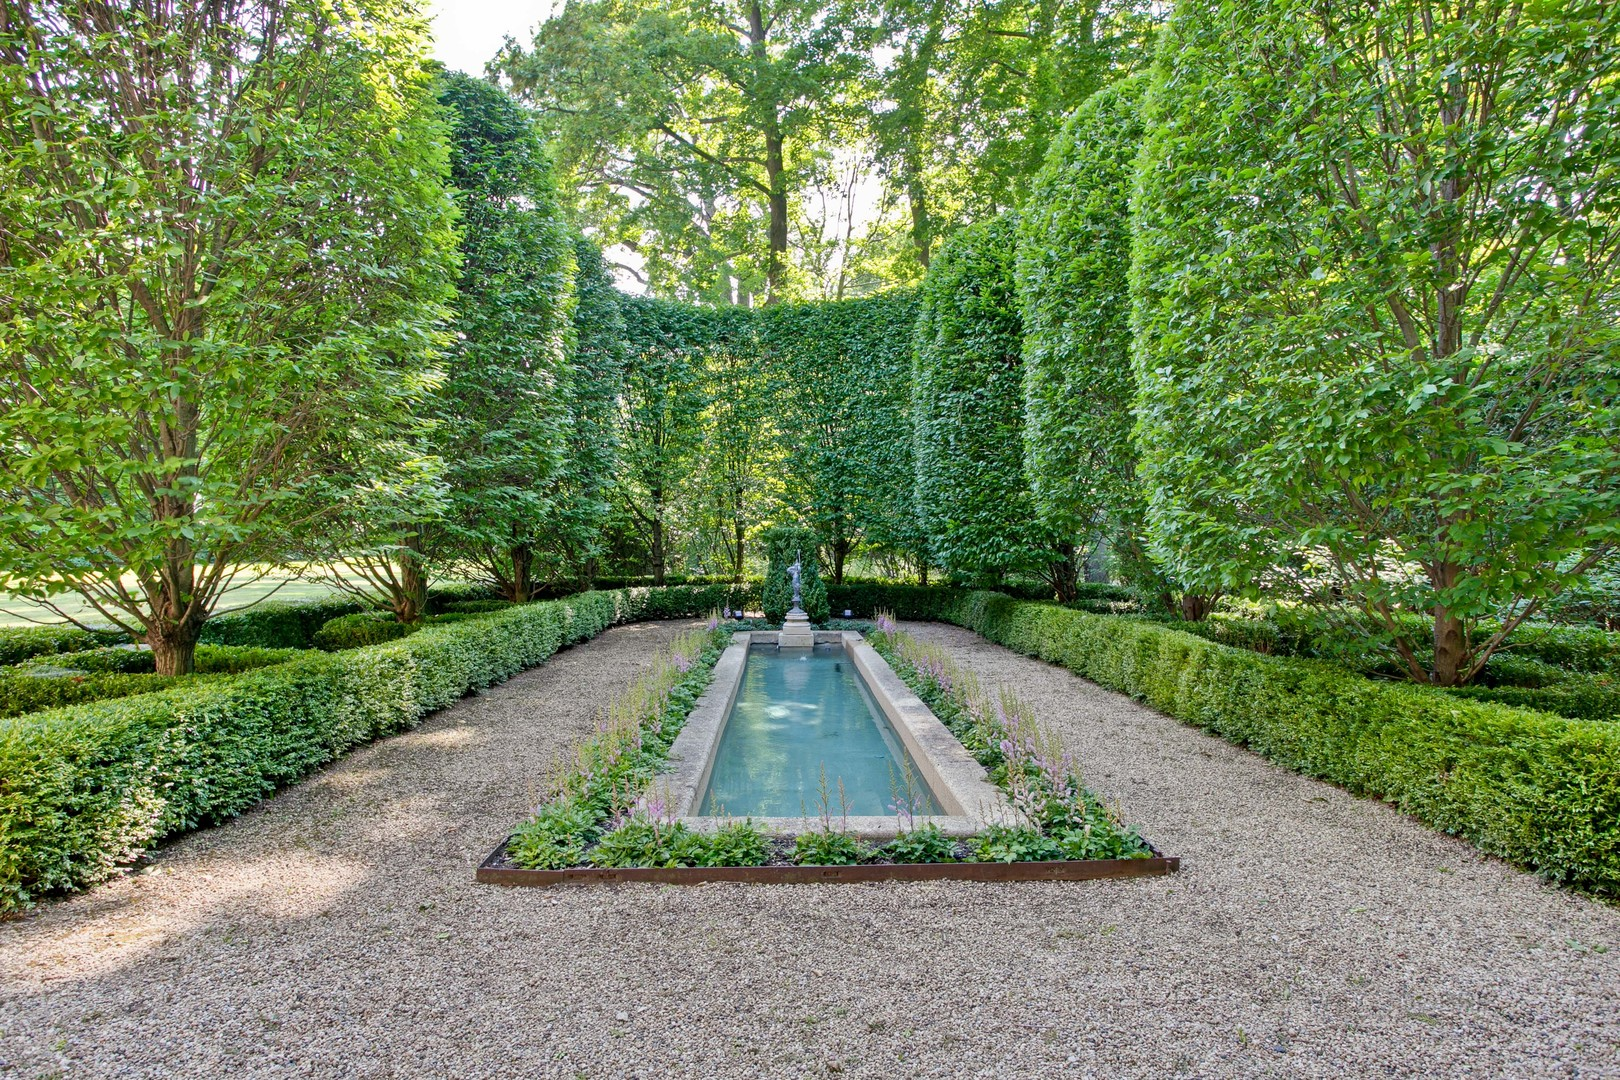 Breathtaking French gardens and outdoor dining at La Lanterne, a grand home designed by David Adler.